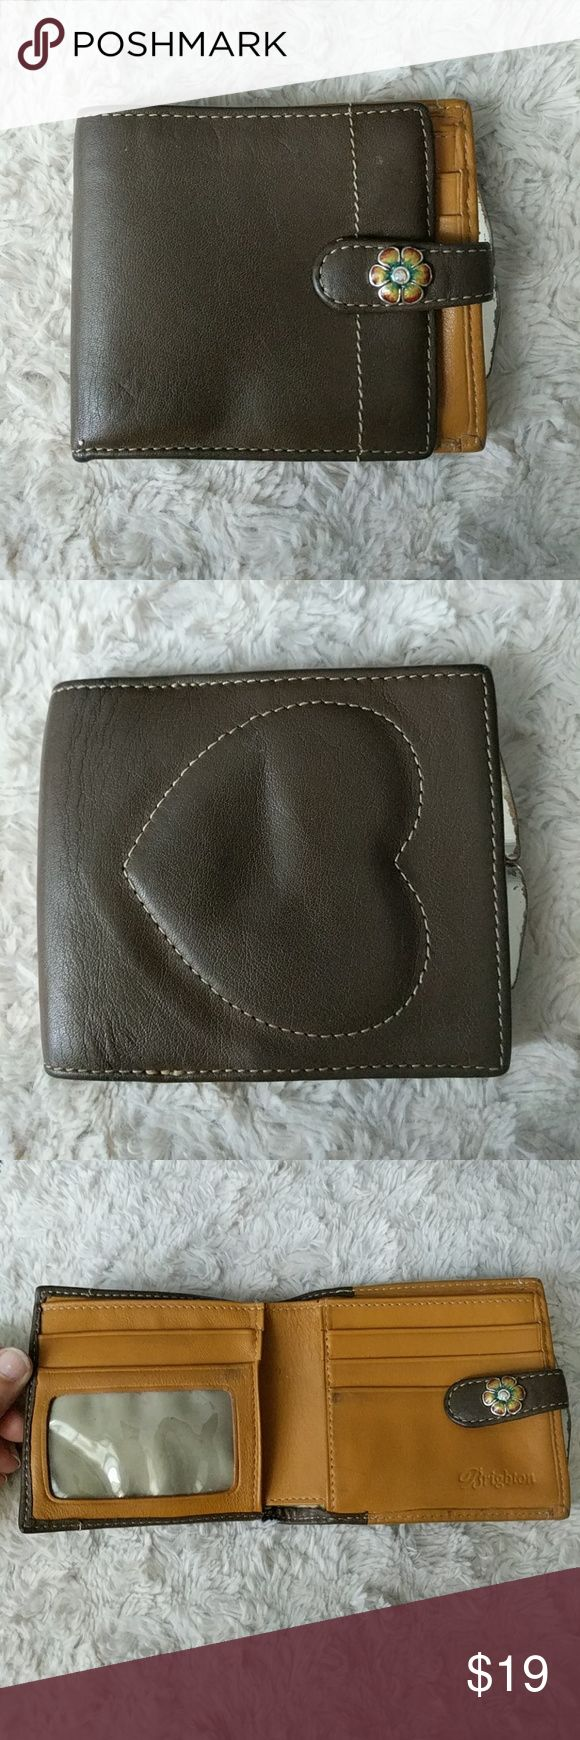 Brighton wallet Brown and hide colored leather wallet with heart accent and flower snap Brighton Bags Wallets